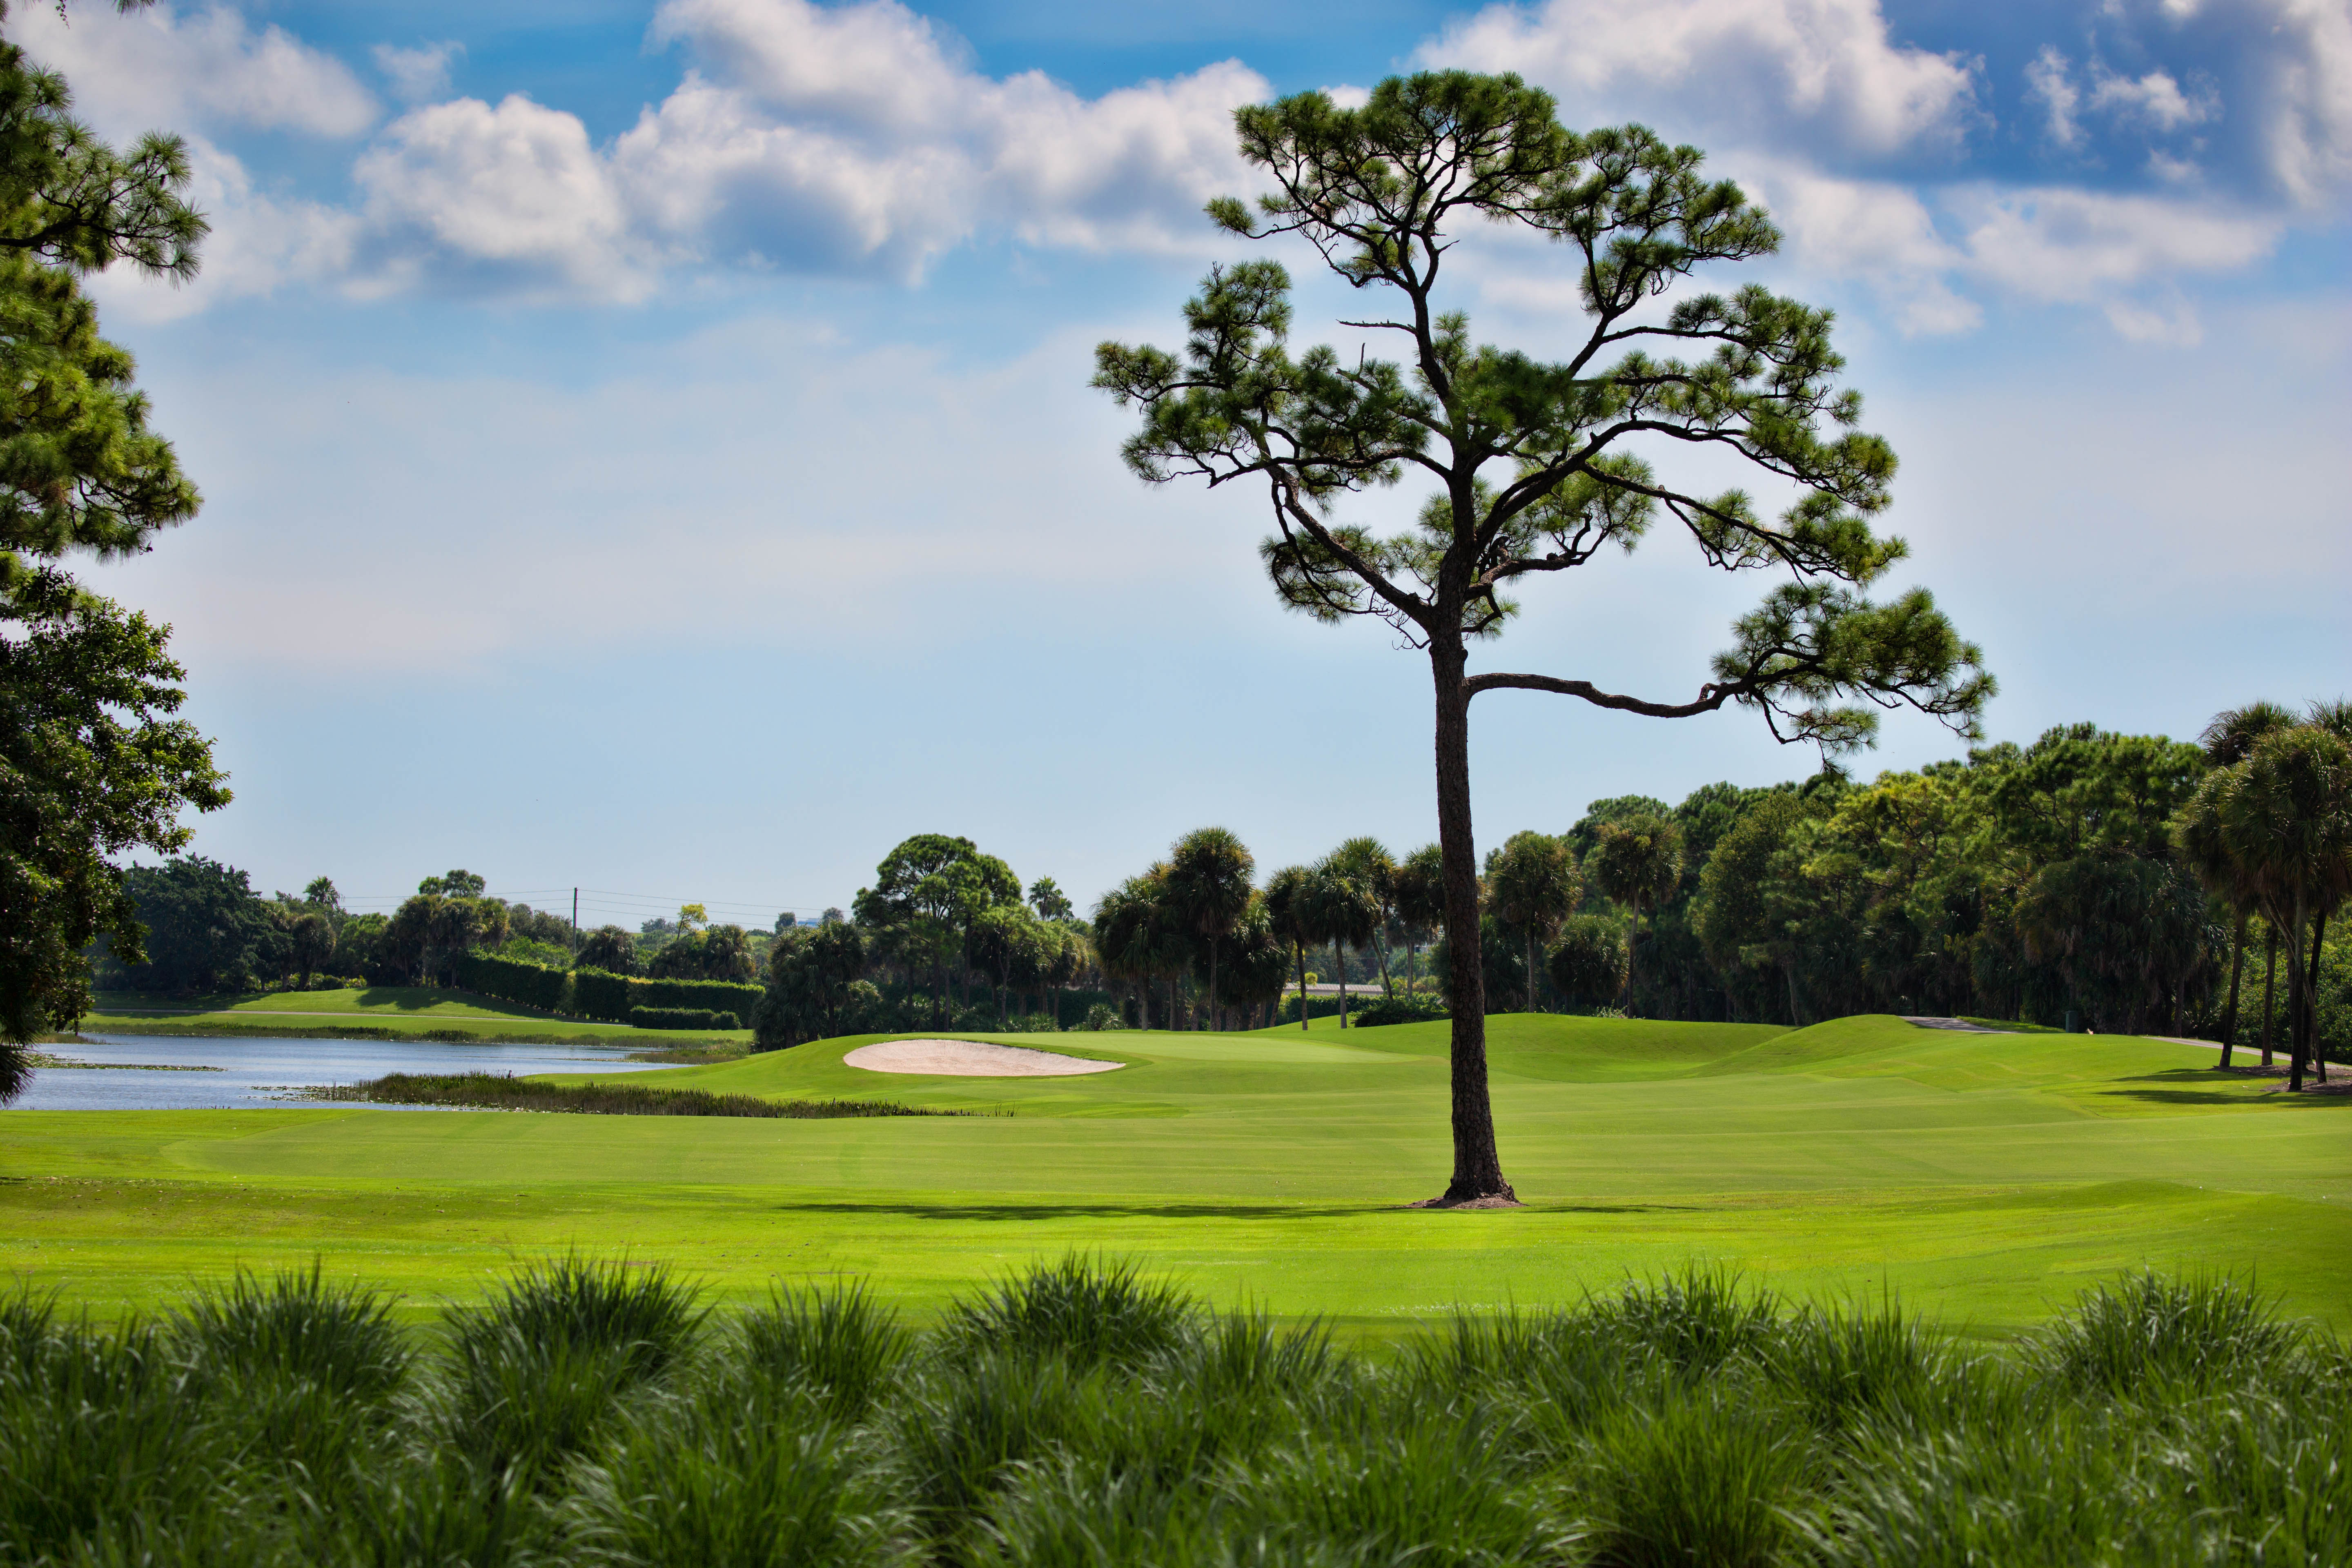 COUNTRY CLUB IN PINE AIR FLORIDA